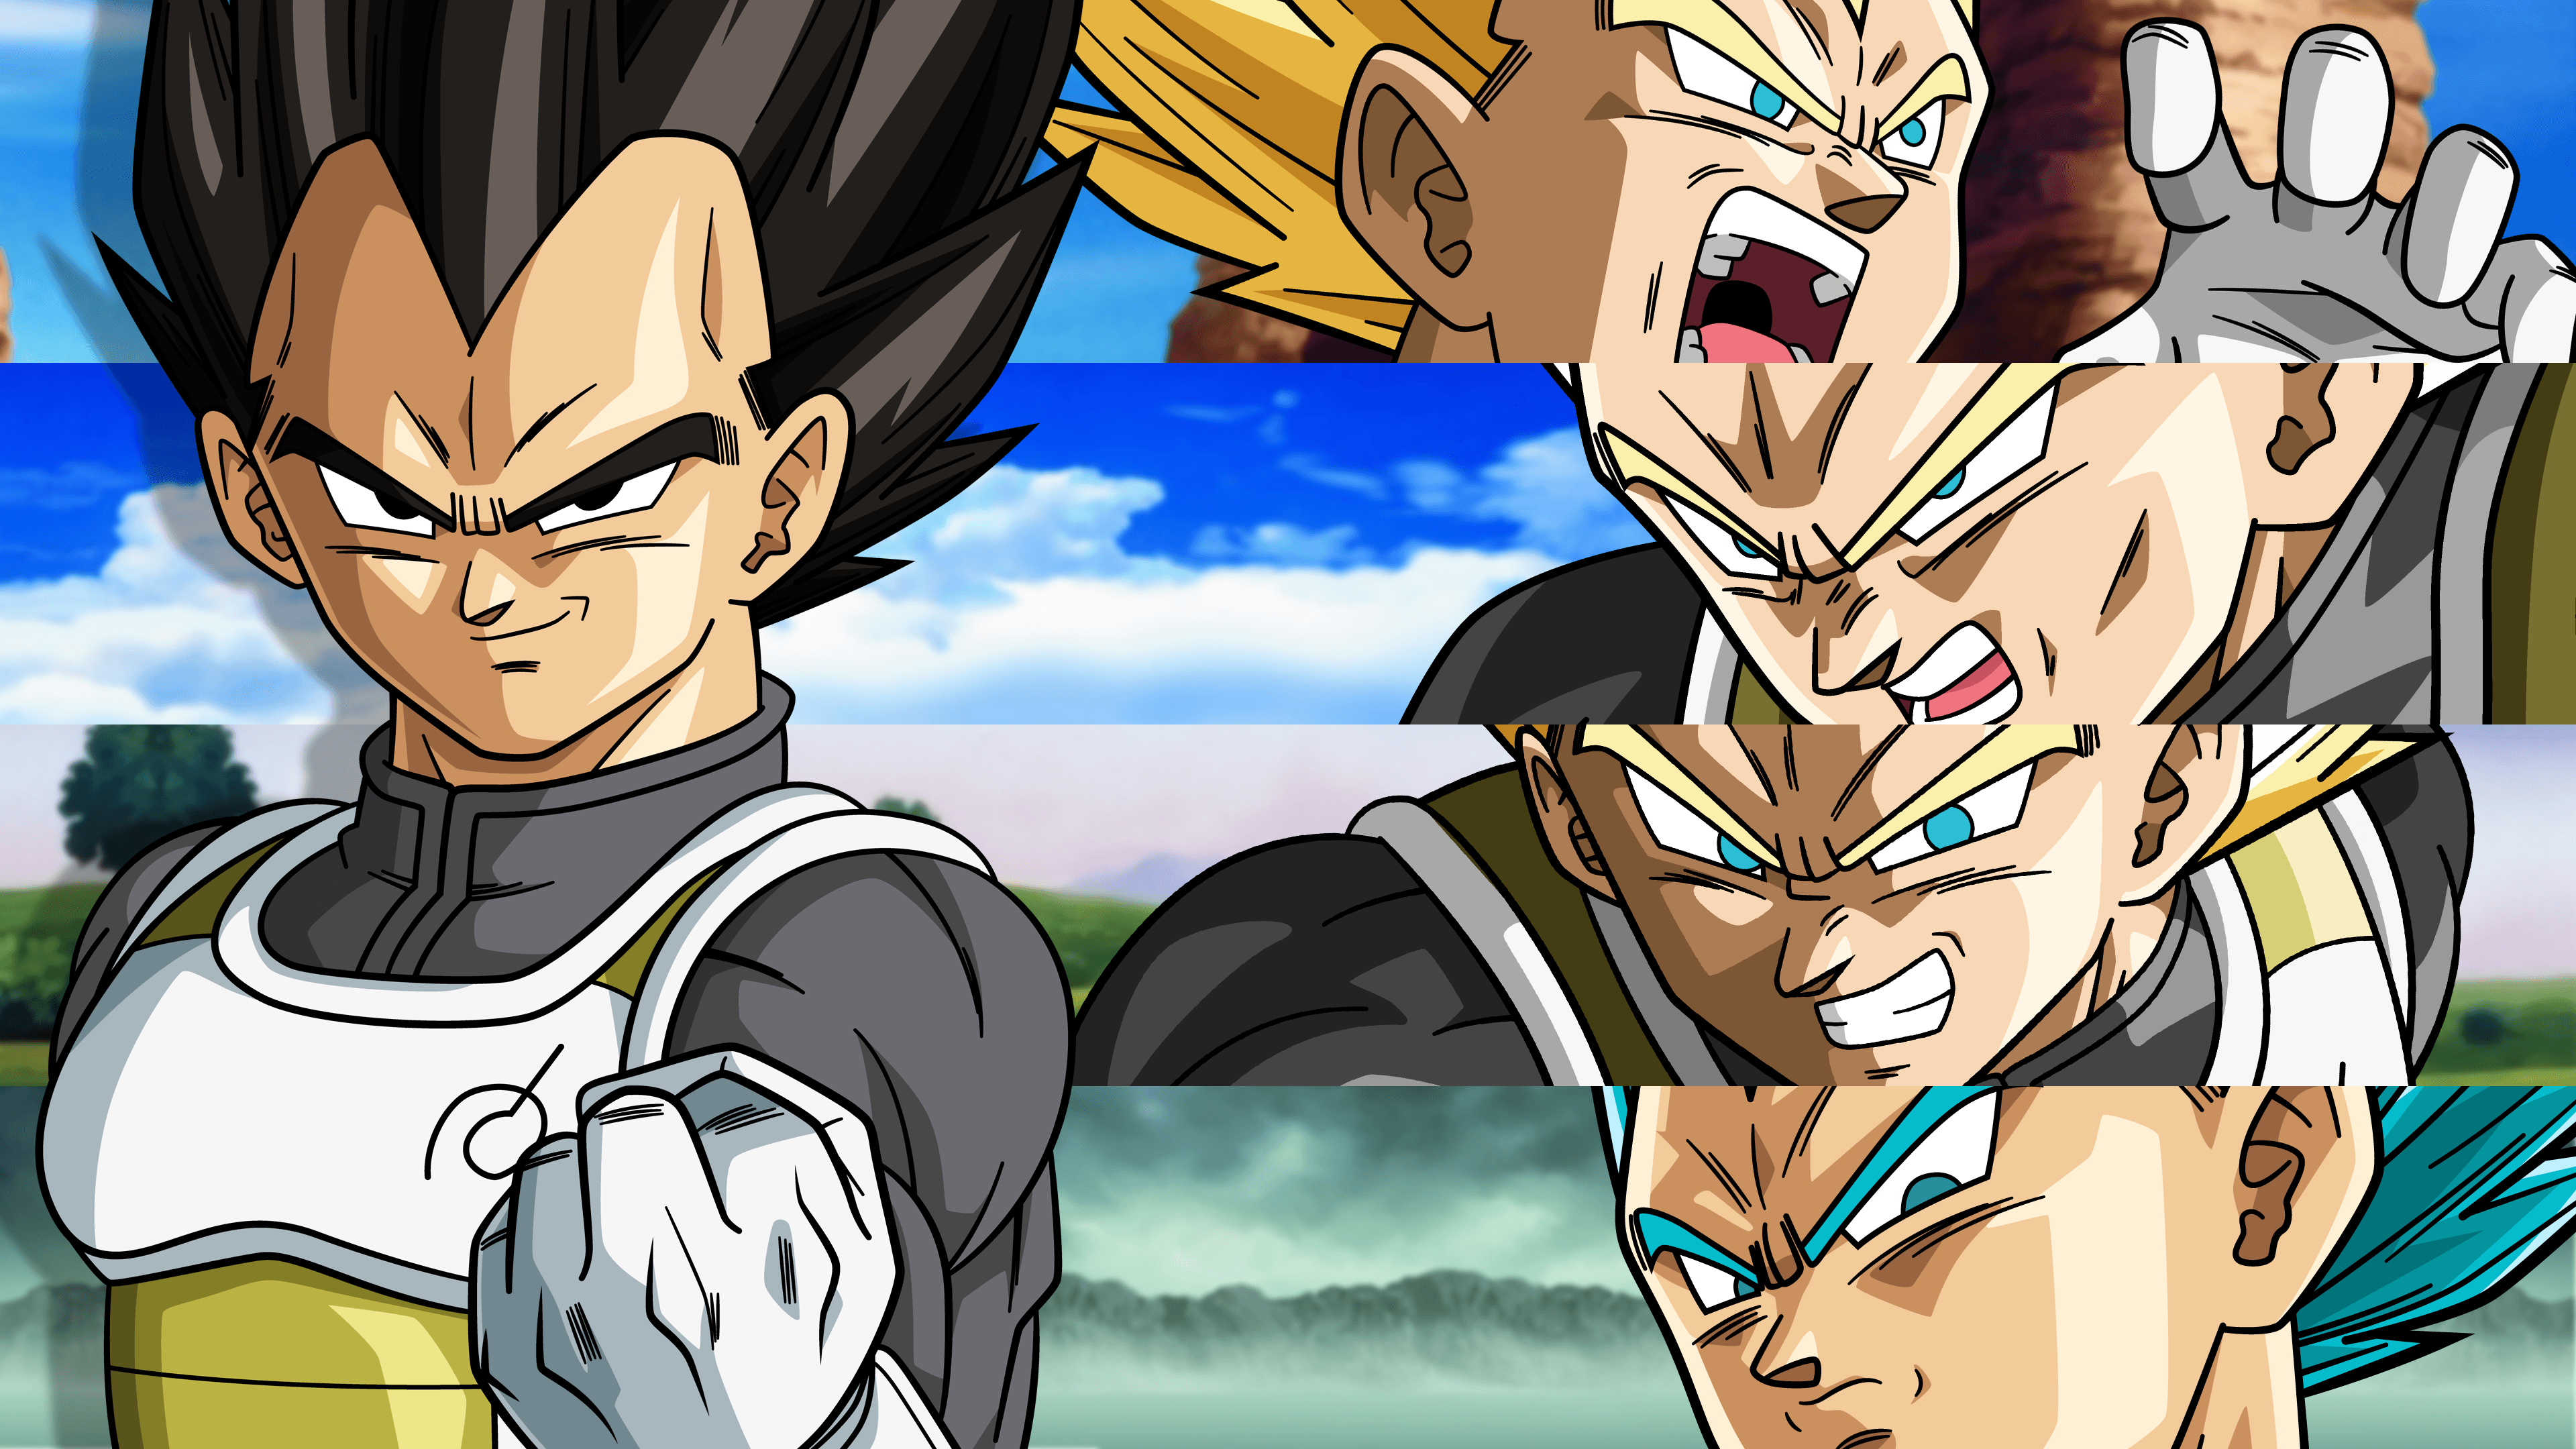 Vegeta New Form Wallpapers Top Free Vegeta New Form Backgrounds Wallpaperaccess